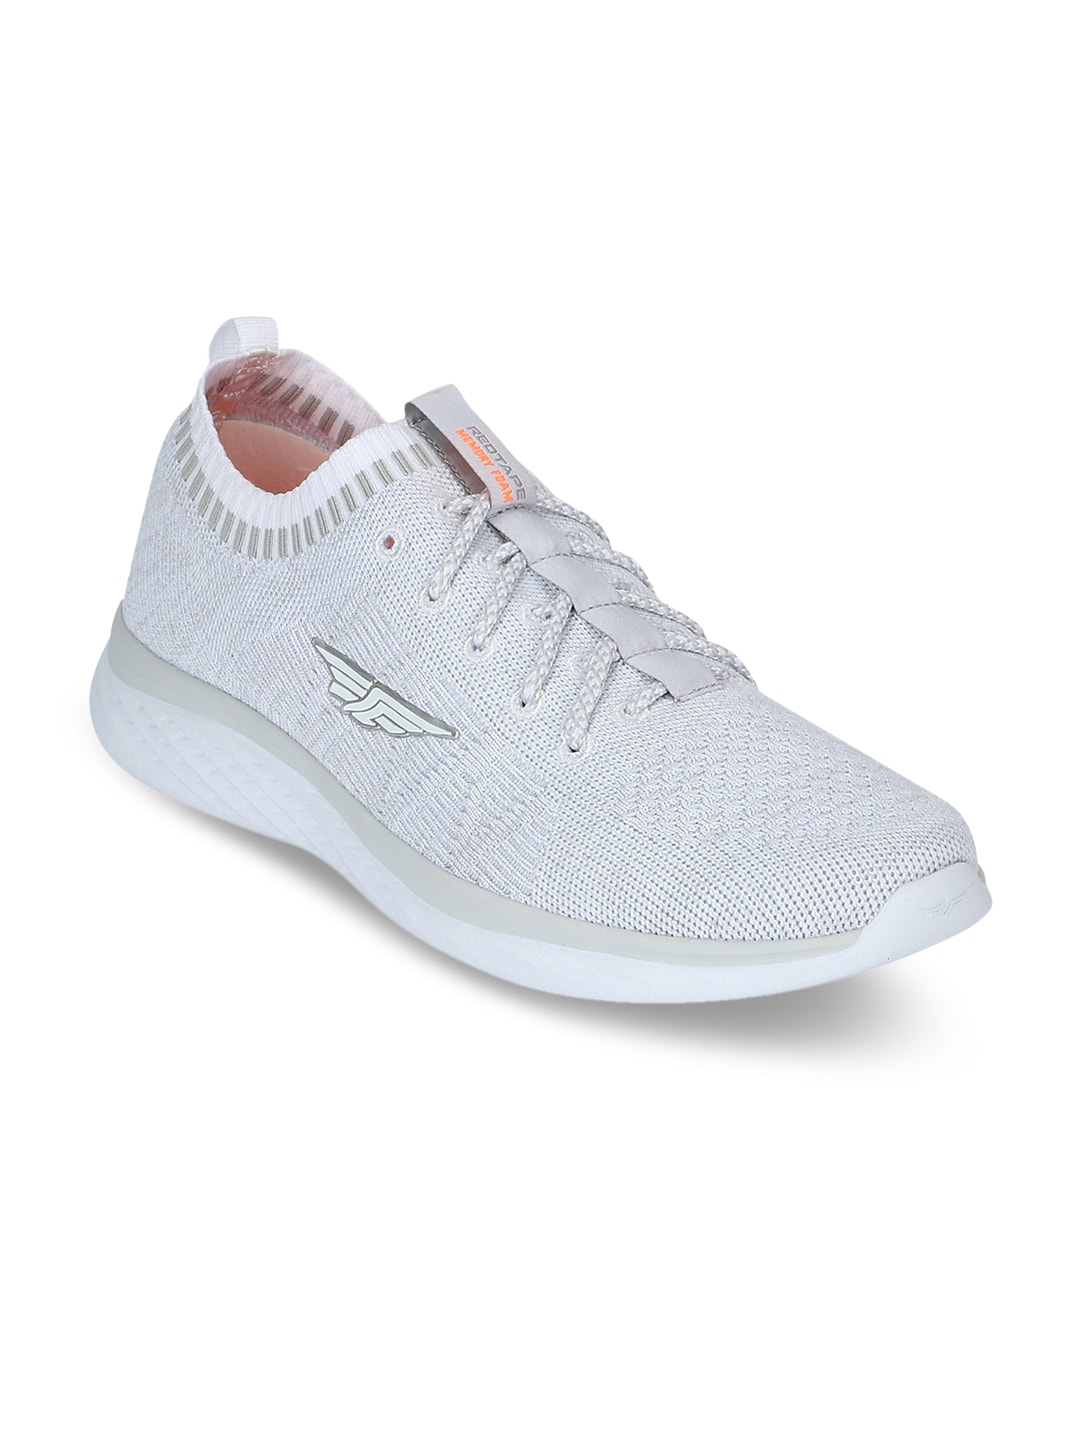 Sports Shoes for Men - Buy Men Sports Shoes Online in India - Myntra 80142a461